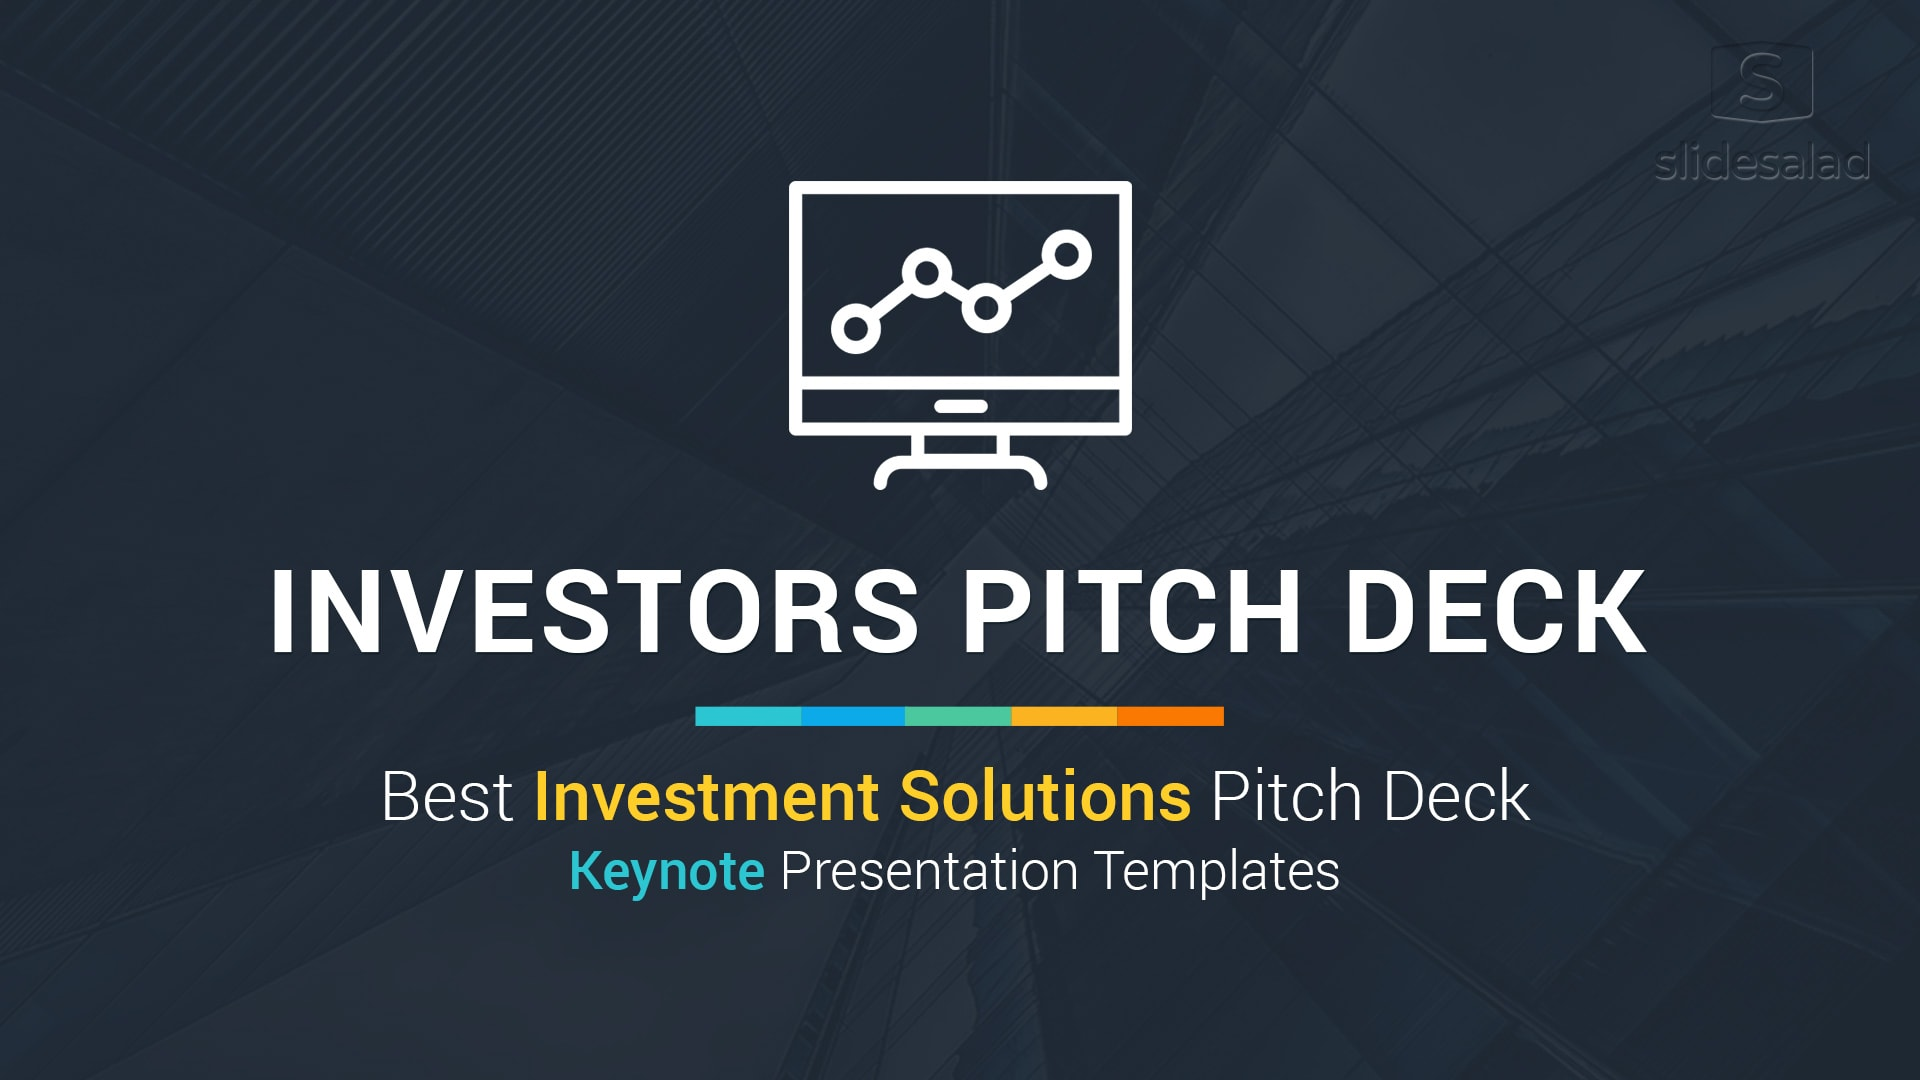 Best Investors Pitch Deck Keynote Template – Inspirational Keynote Theme for Your Ideas